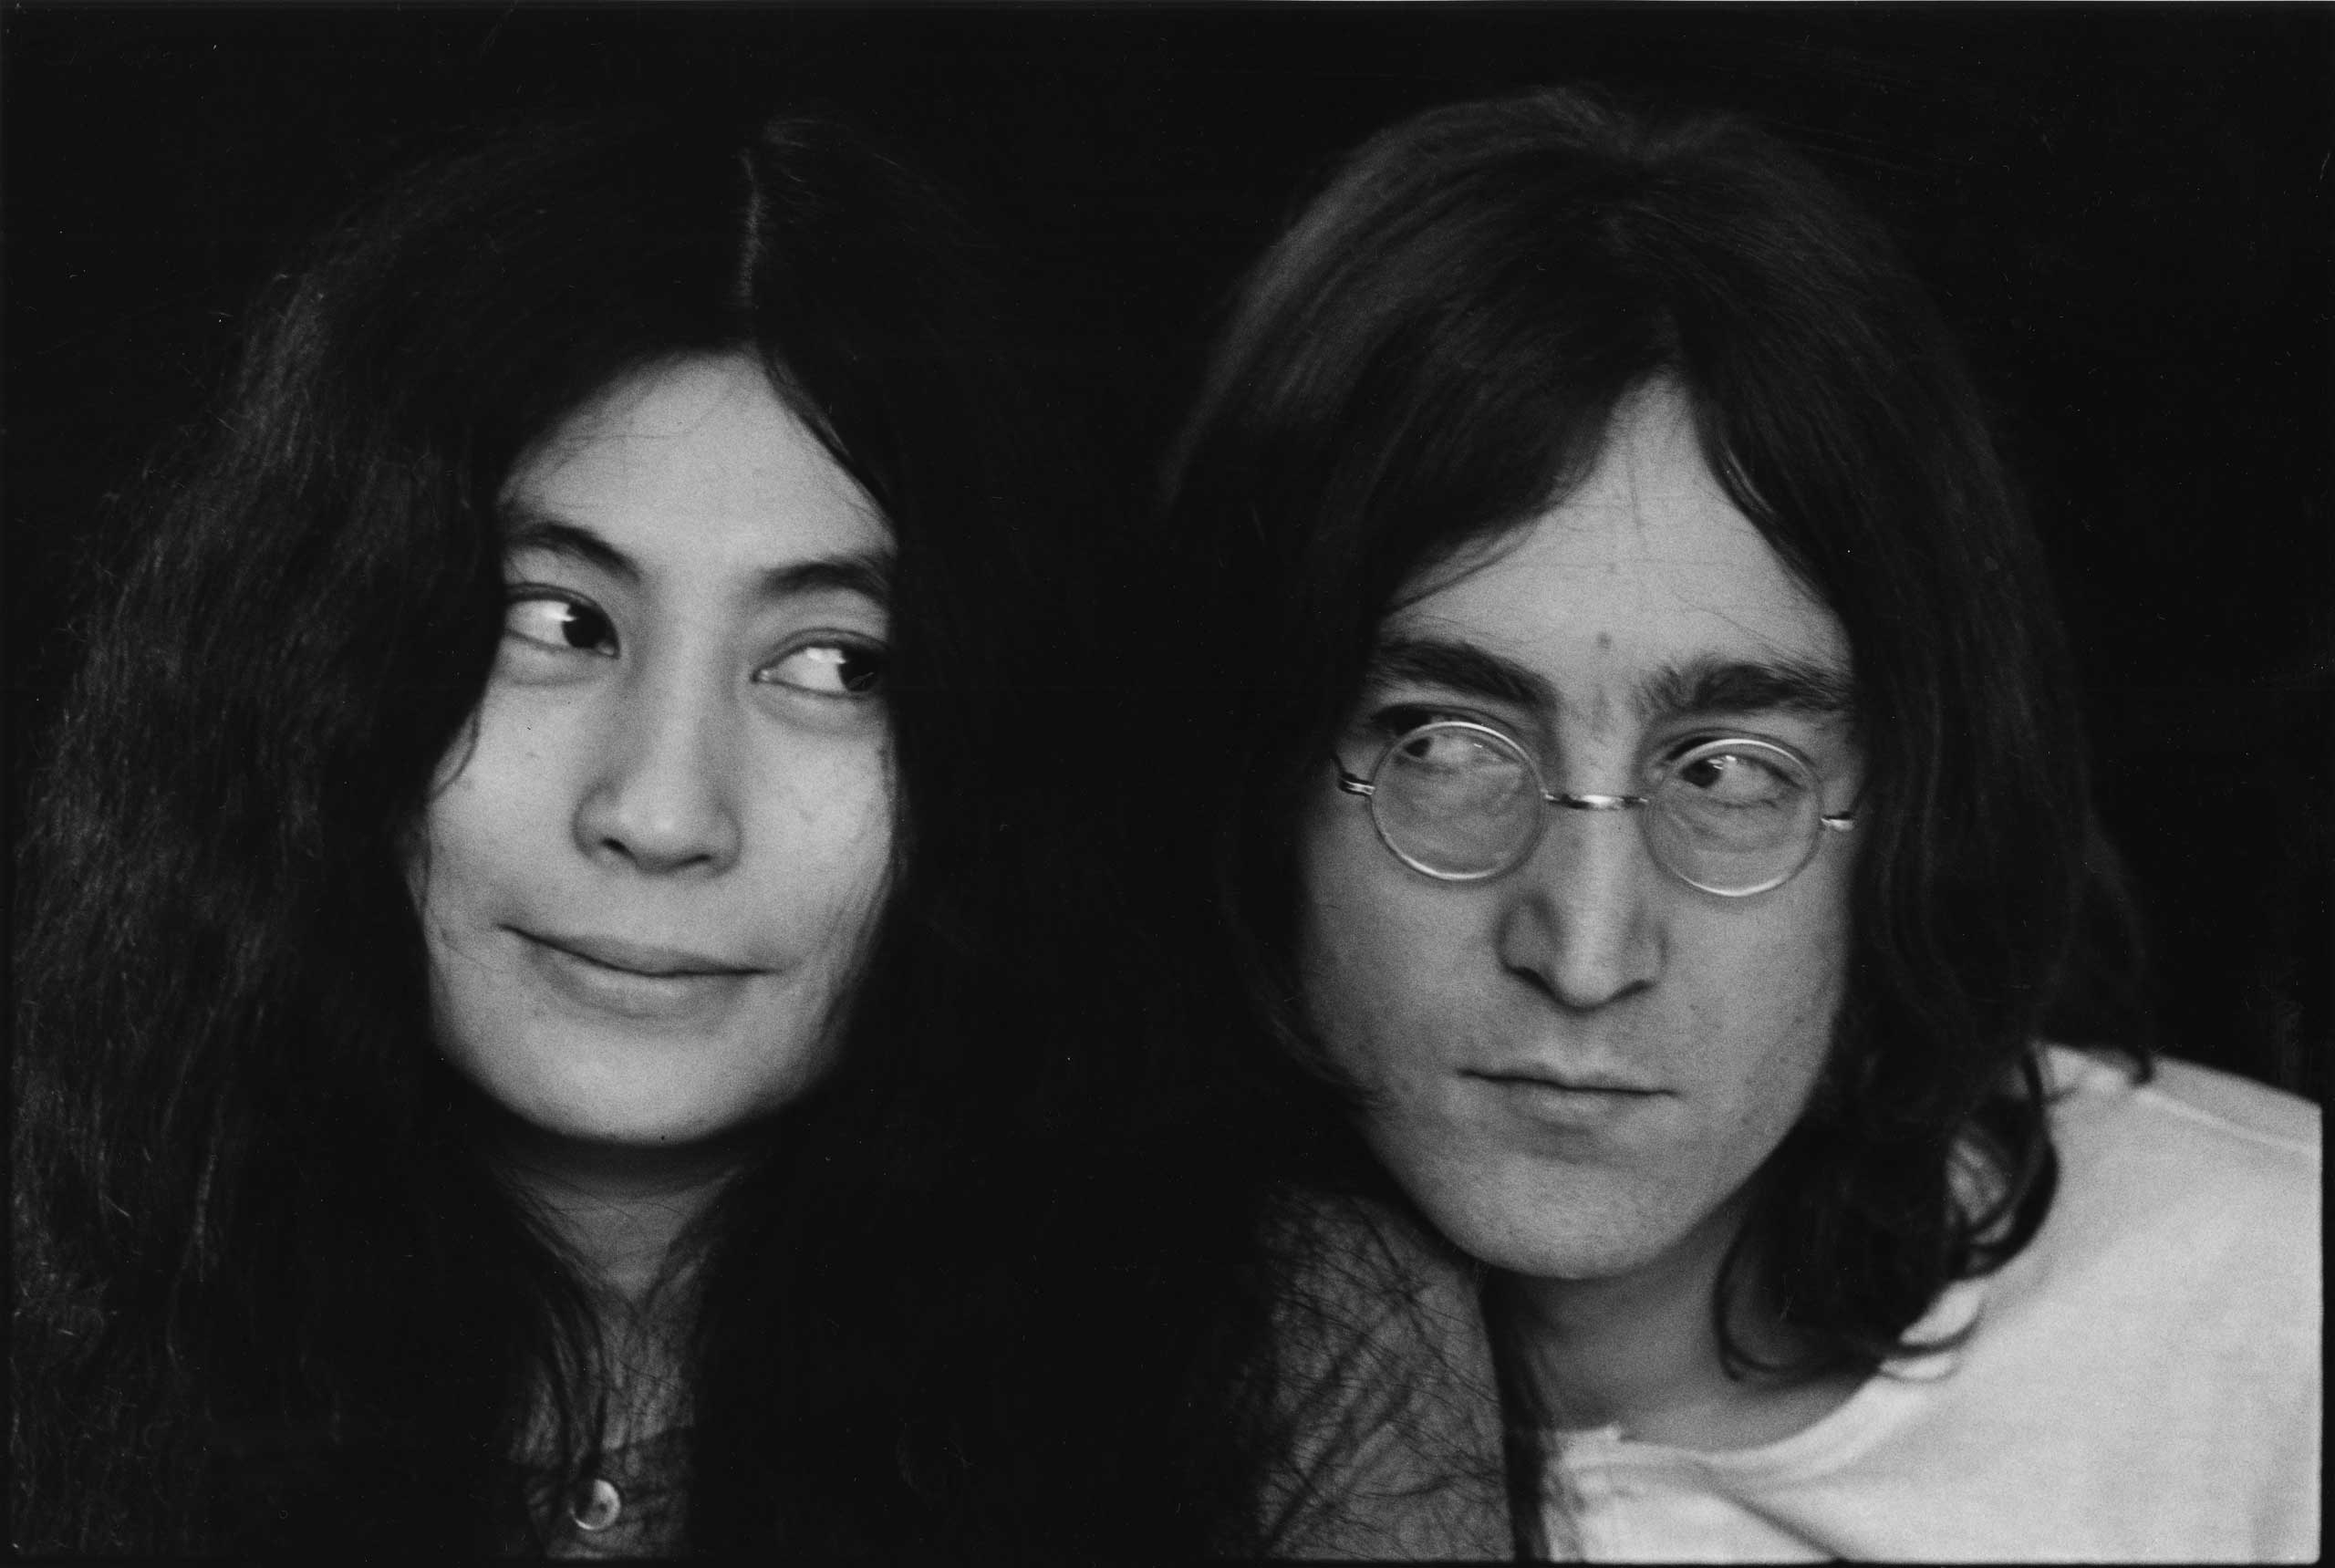 Yoko Ono and John Lennon in 1968.